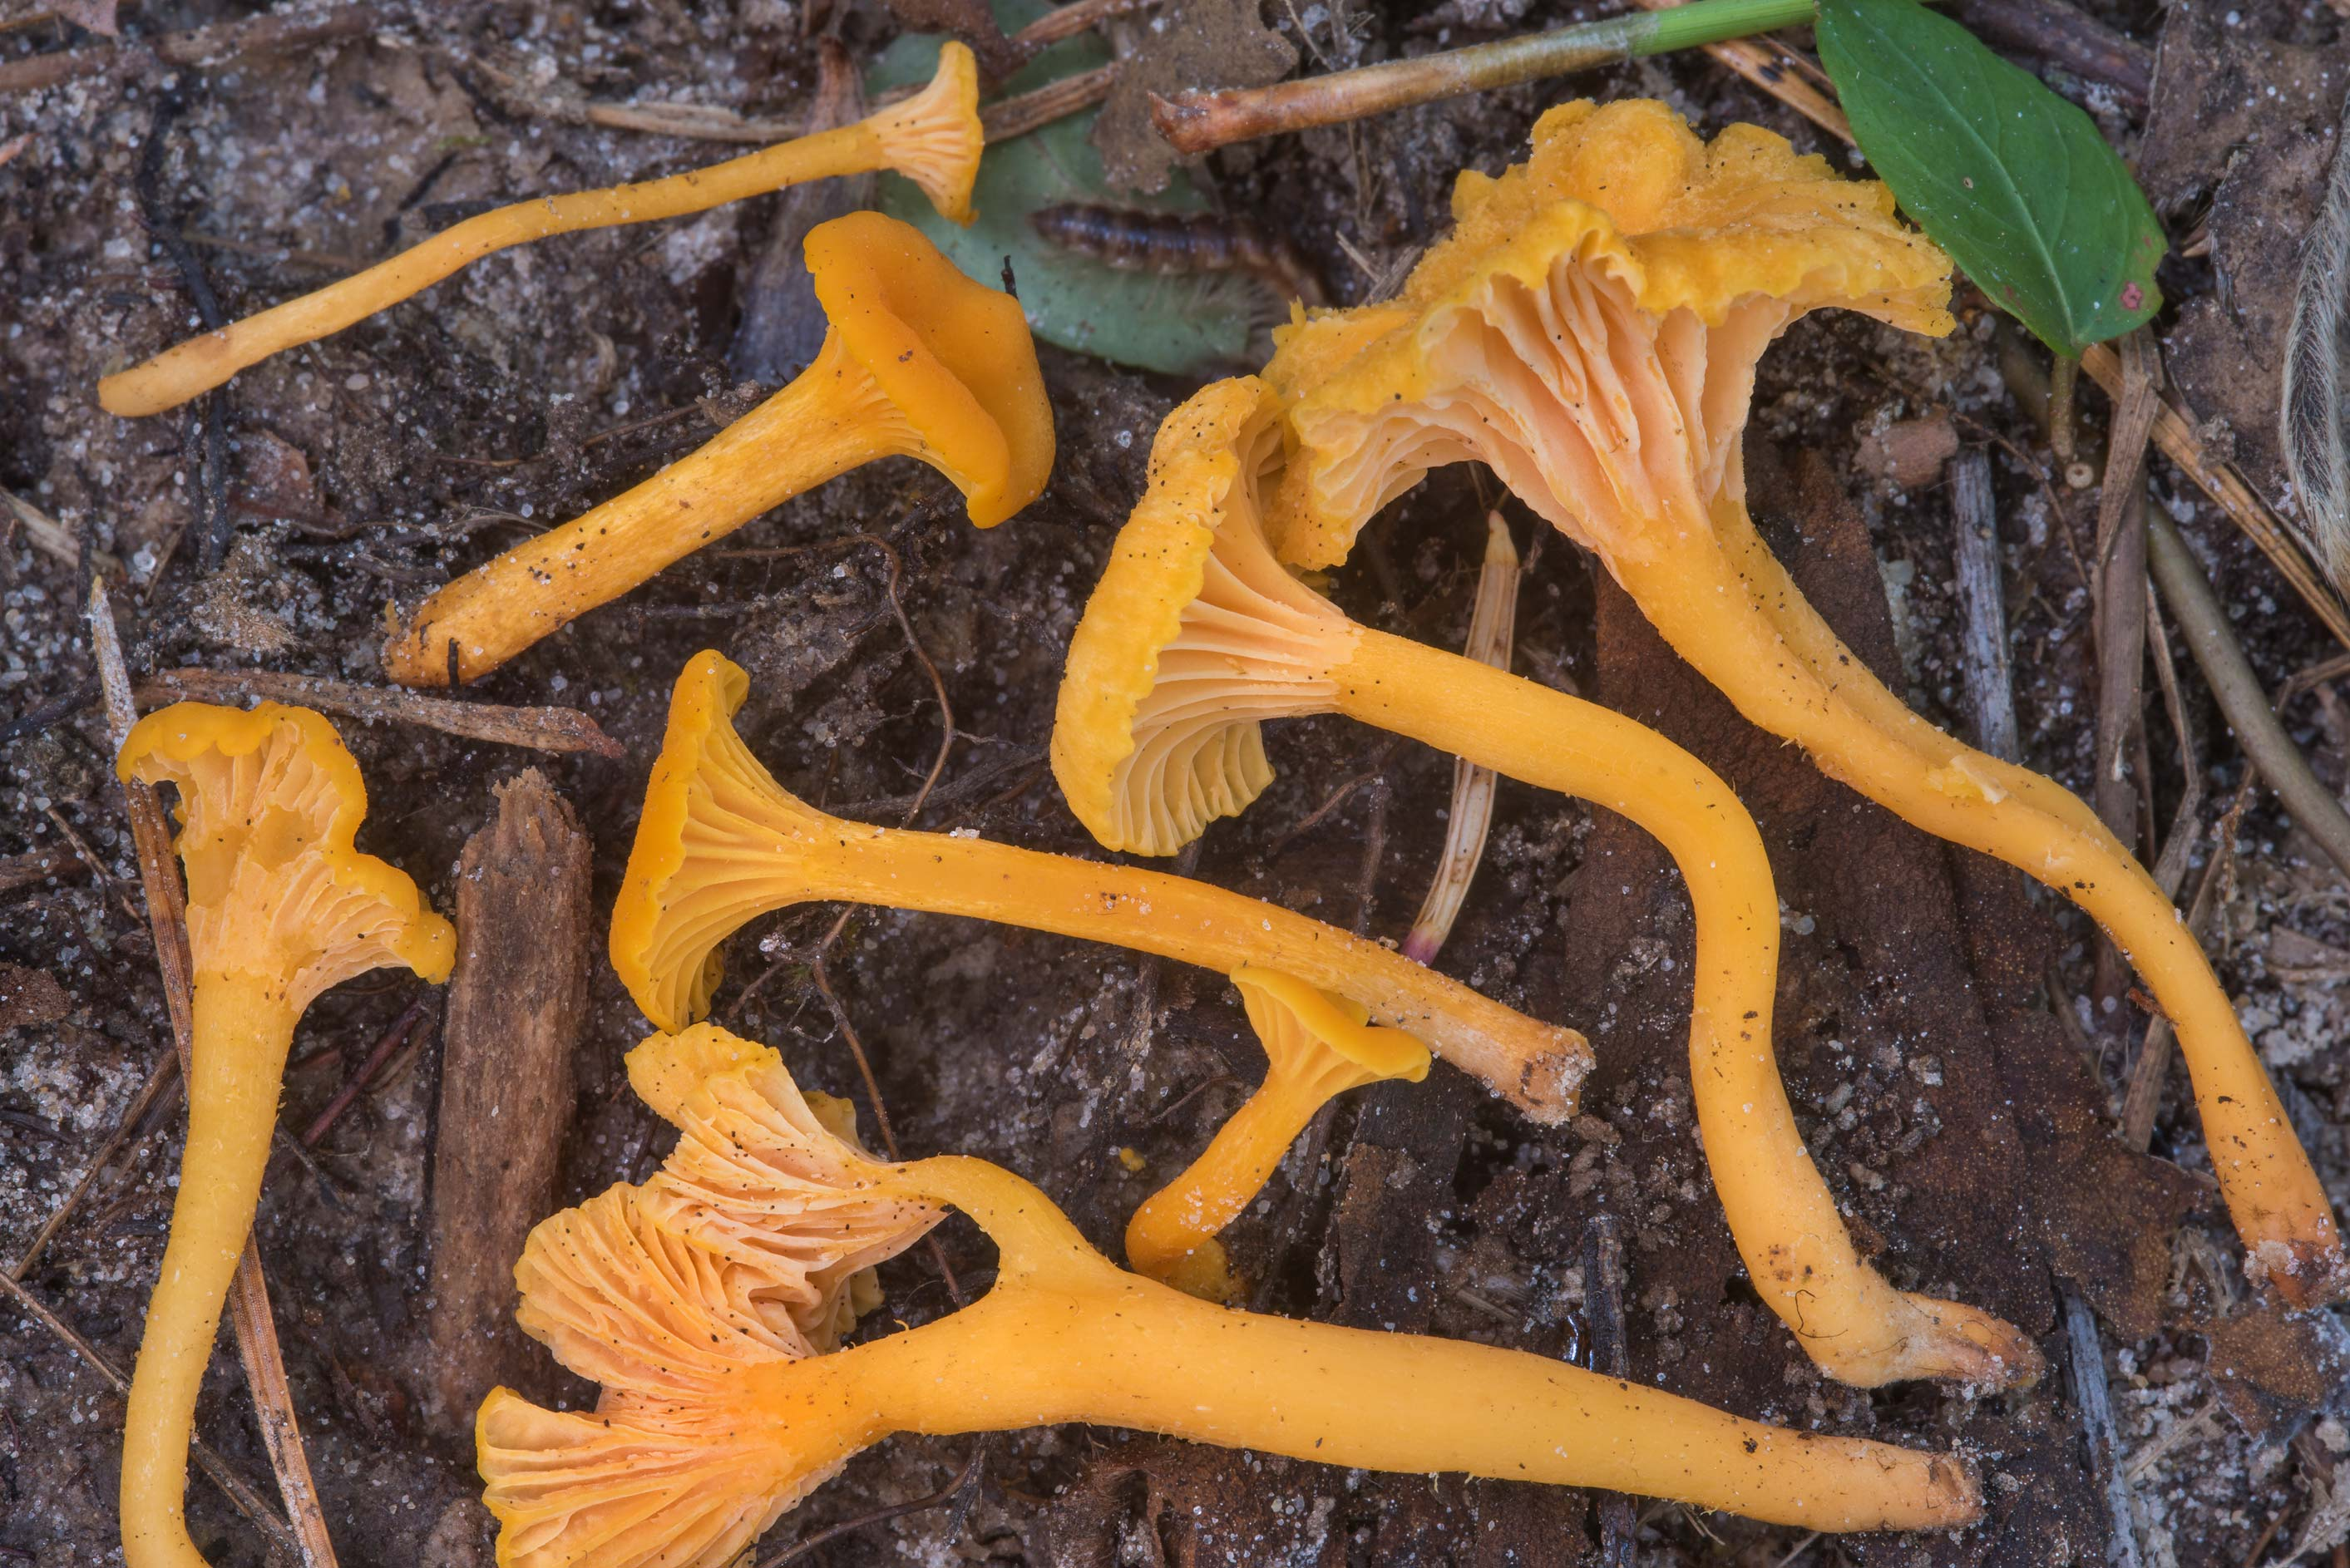 Group of chanterelle mushrooms Cantharellus minor...National Forest. Shepherd, Texas